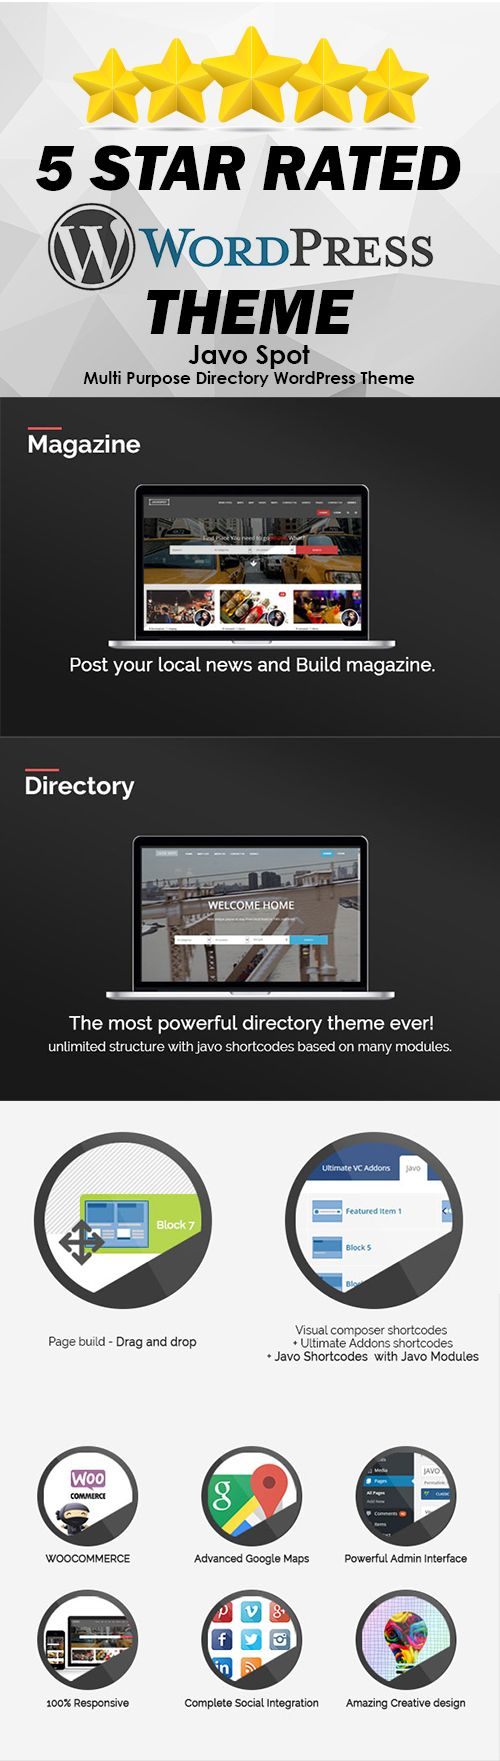 A Multiple Purpose Directory Wordpress Theme which you can create various styles. Based with Visual Composer, the famous Drag and Drop plugin and with plenty of shortcodes. #affiliate